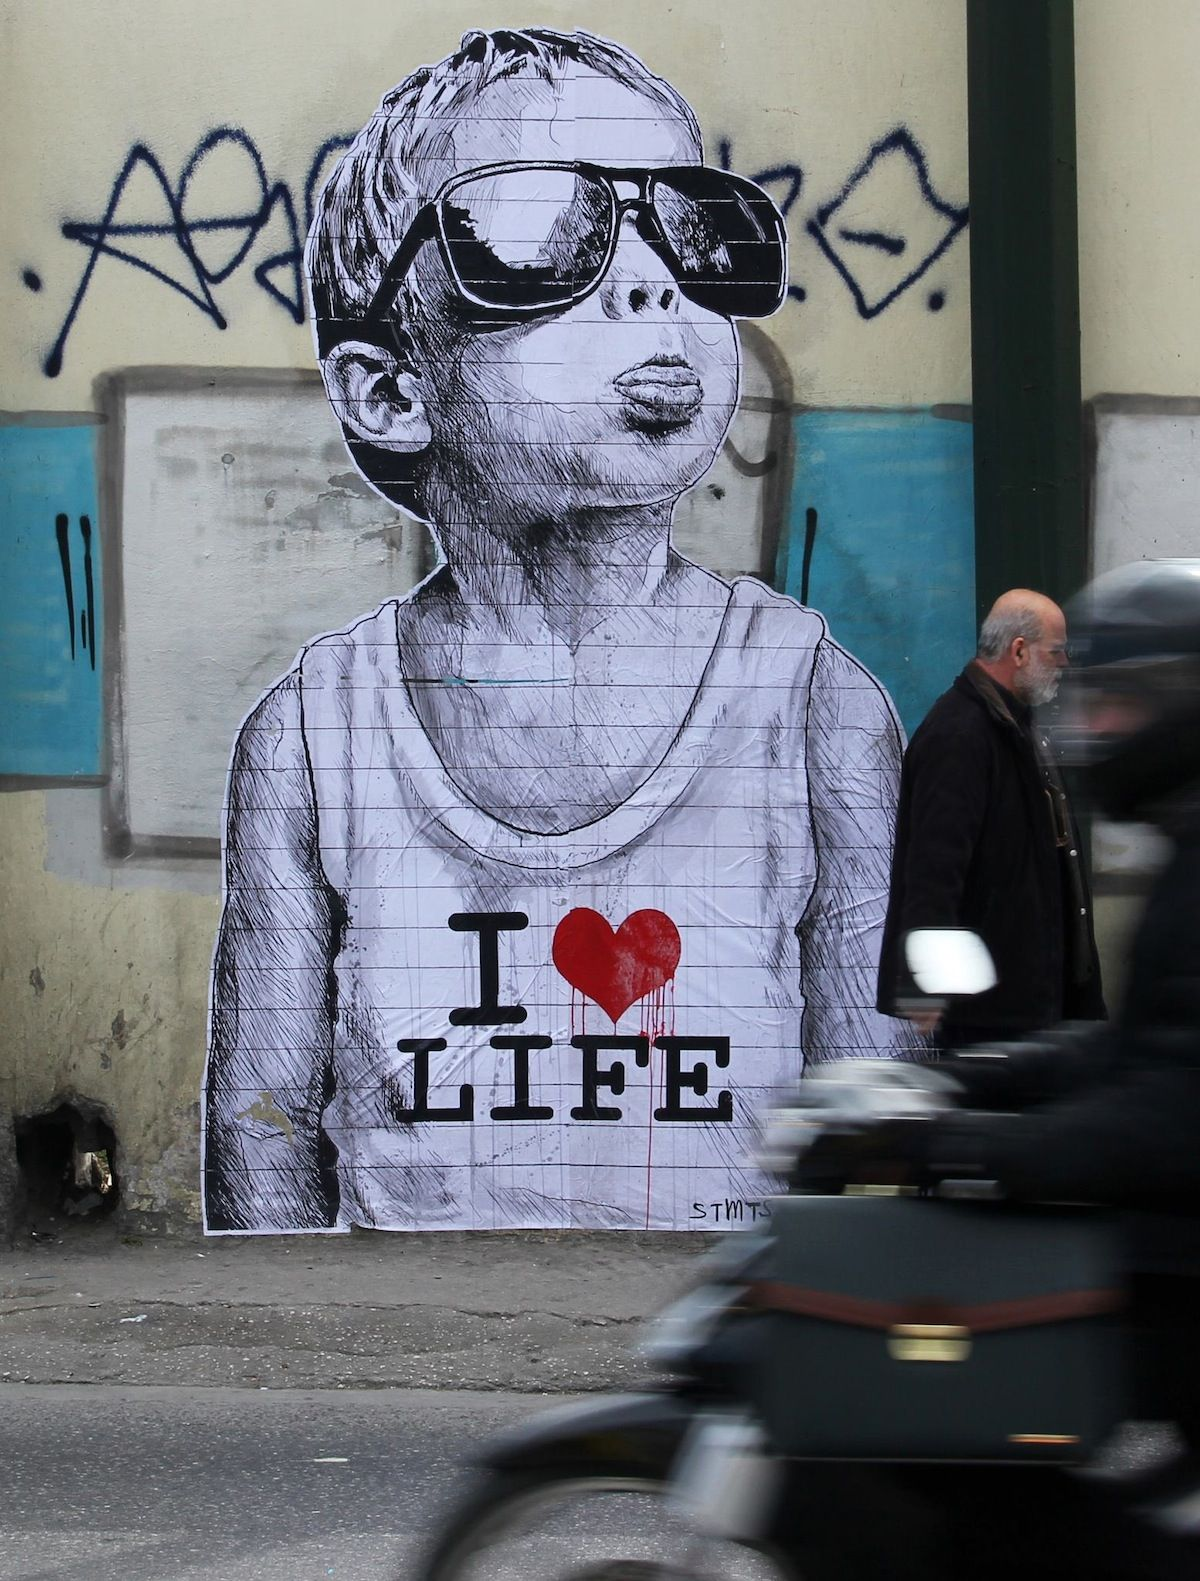 Street art utopia we declare the world as our canvasstreet art by stmts in athens greece street art utopia